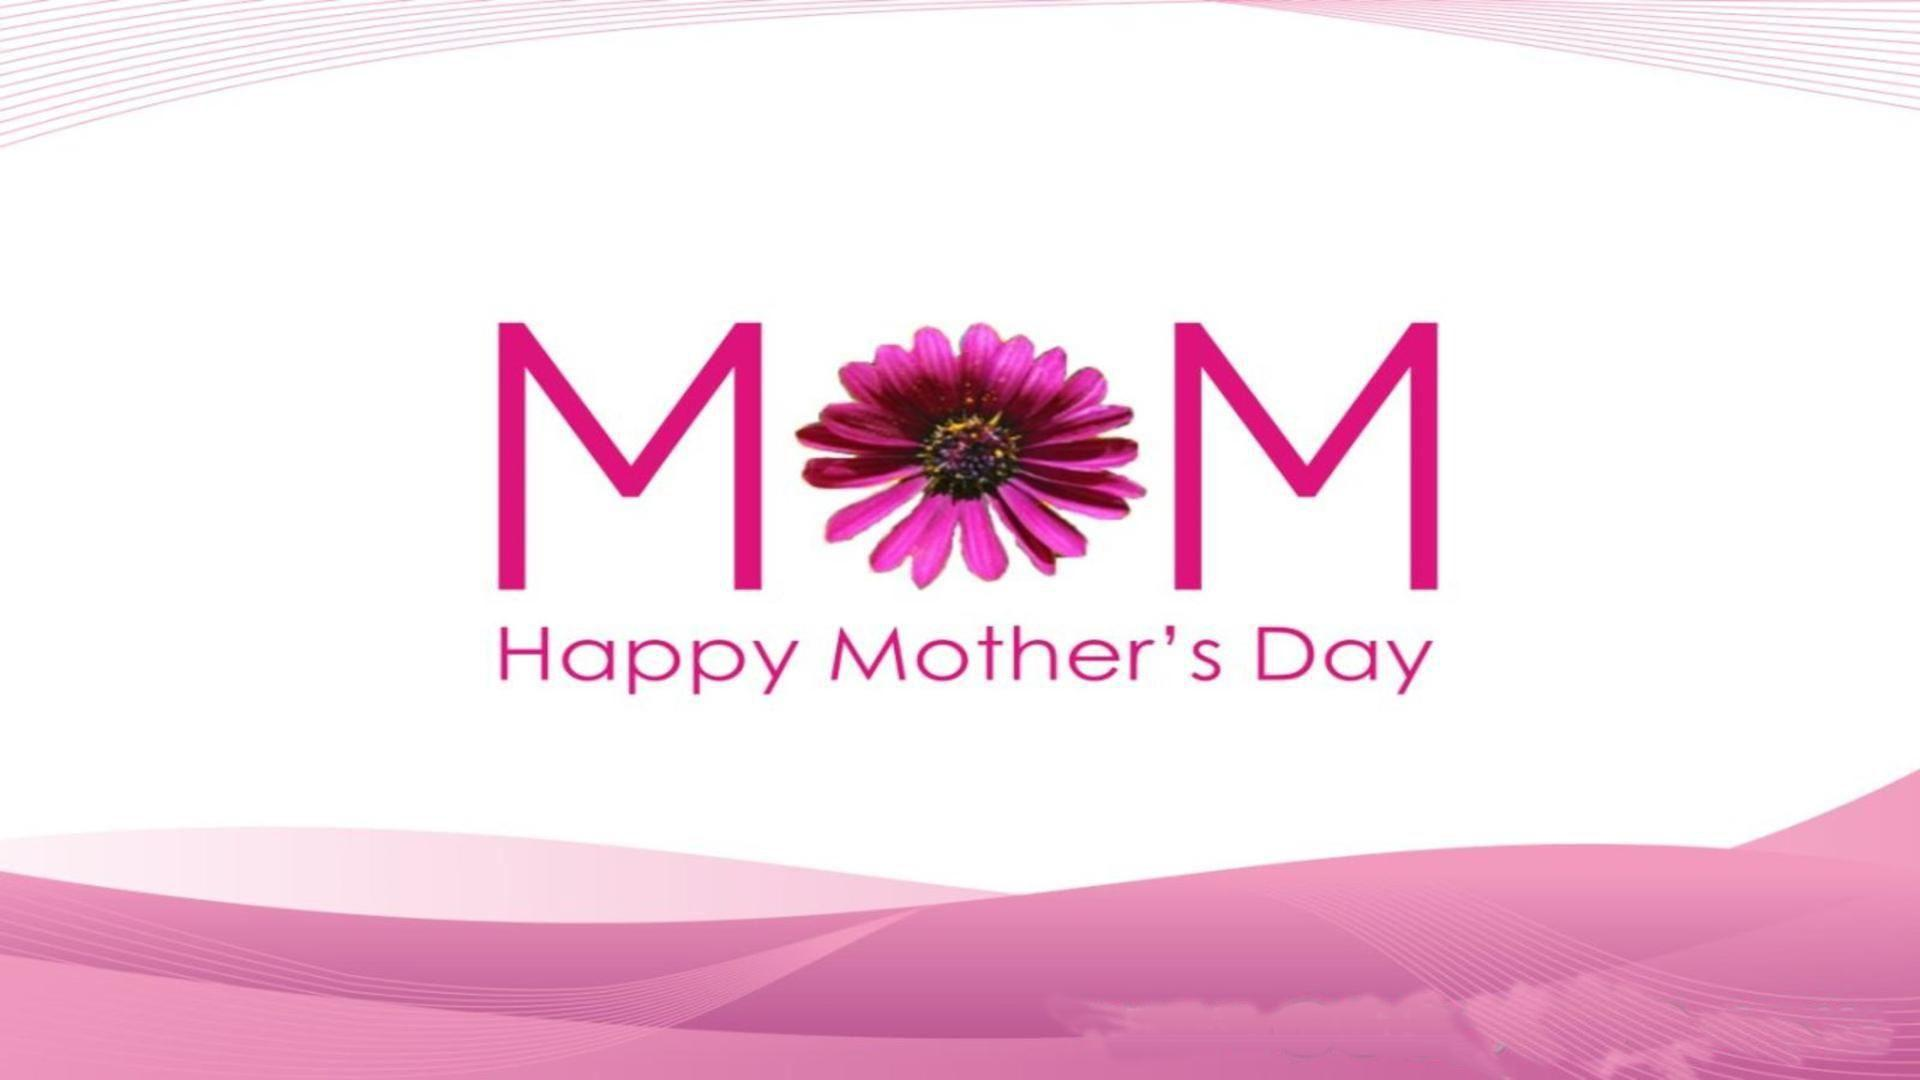 Mother's Day Wallpaper - Wallpaper, High Definition, High Quality ...